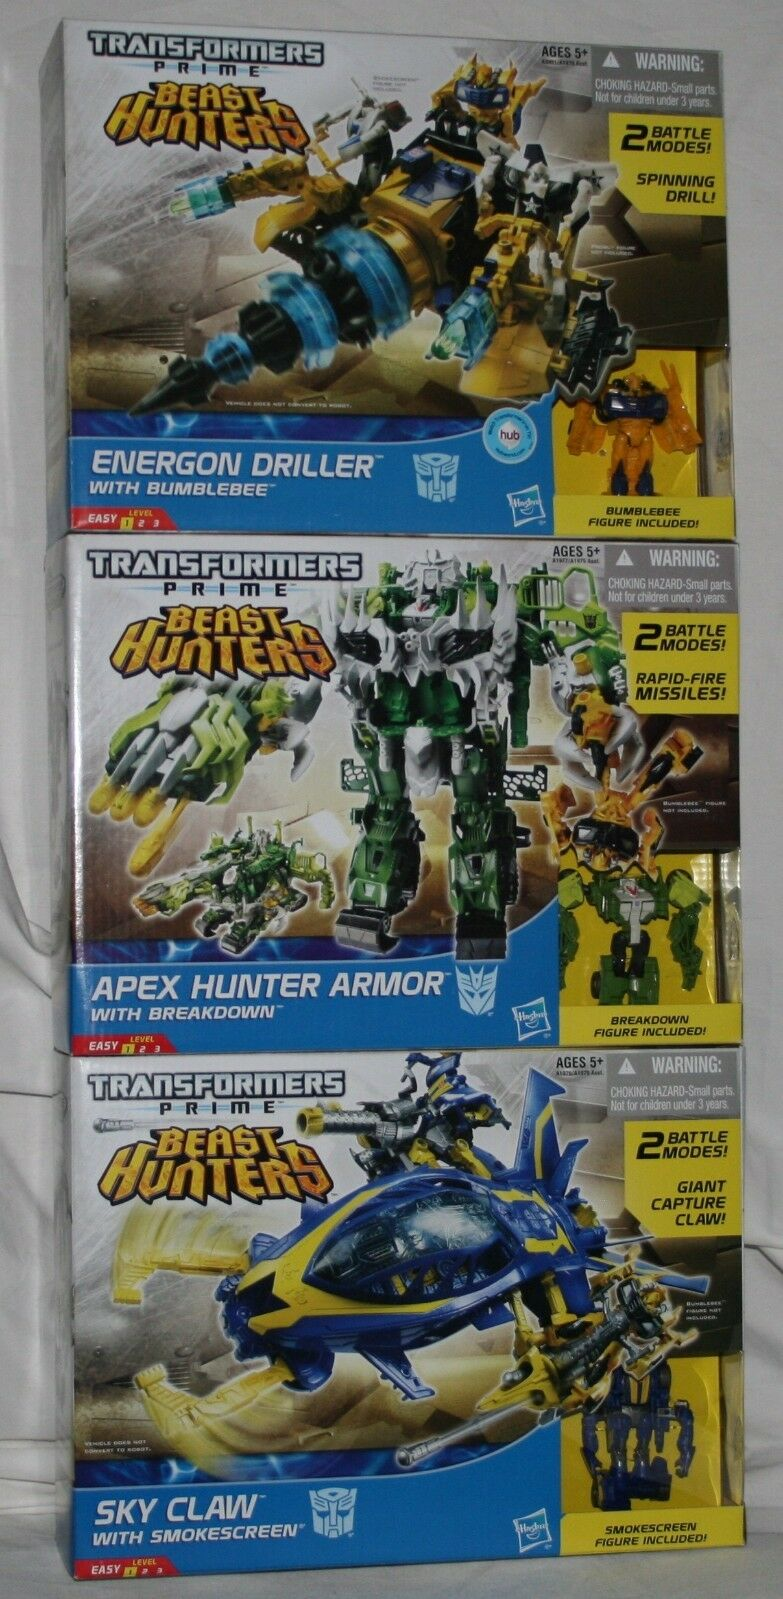 Transformers Prime Beast Hunters Cyberverse Vehicle Lot DGSIM